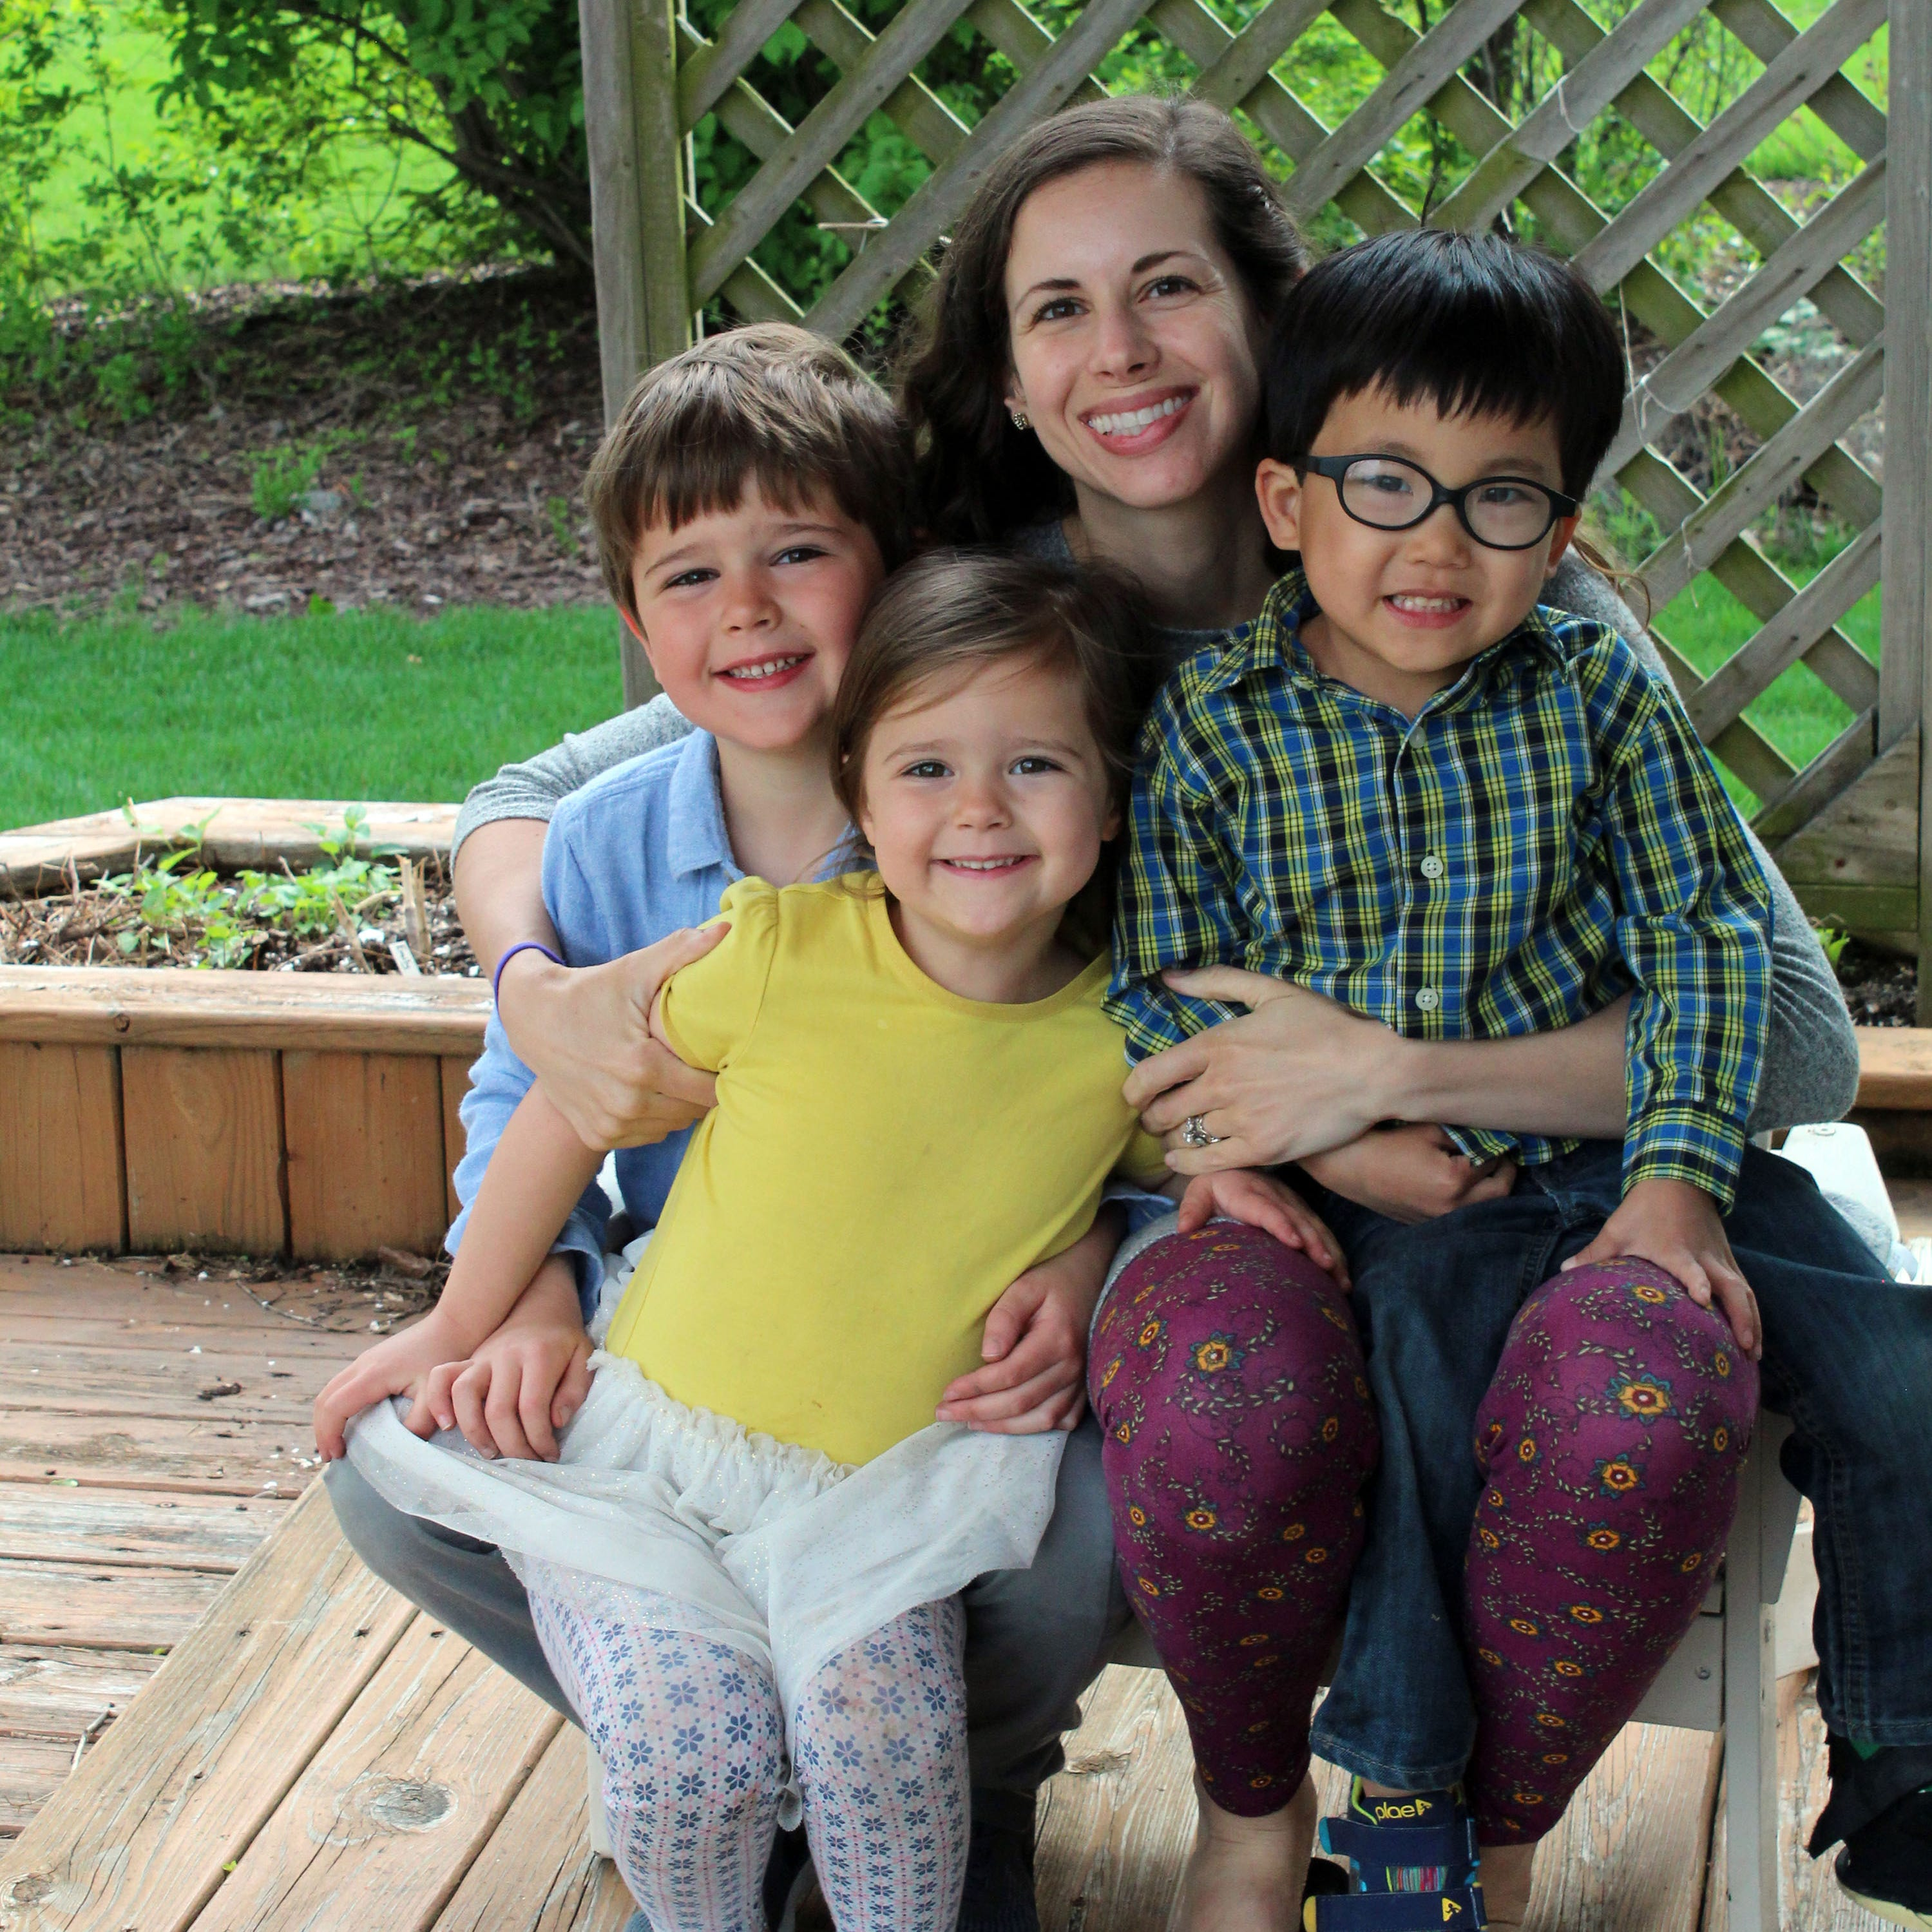 New feature by mom of 3 aims to help parents feed their growing families